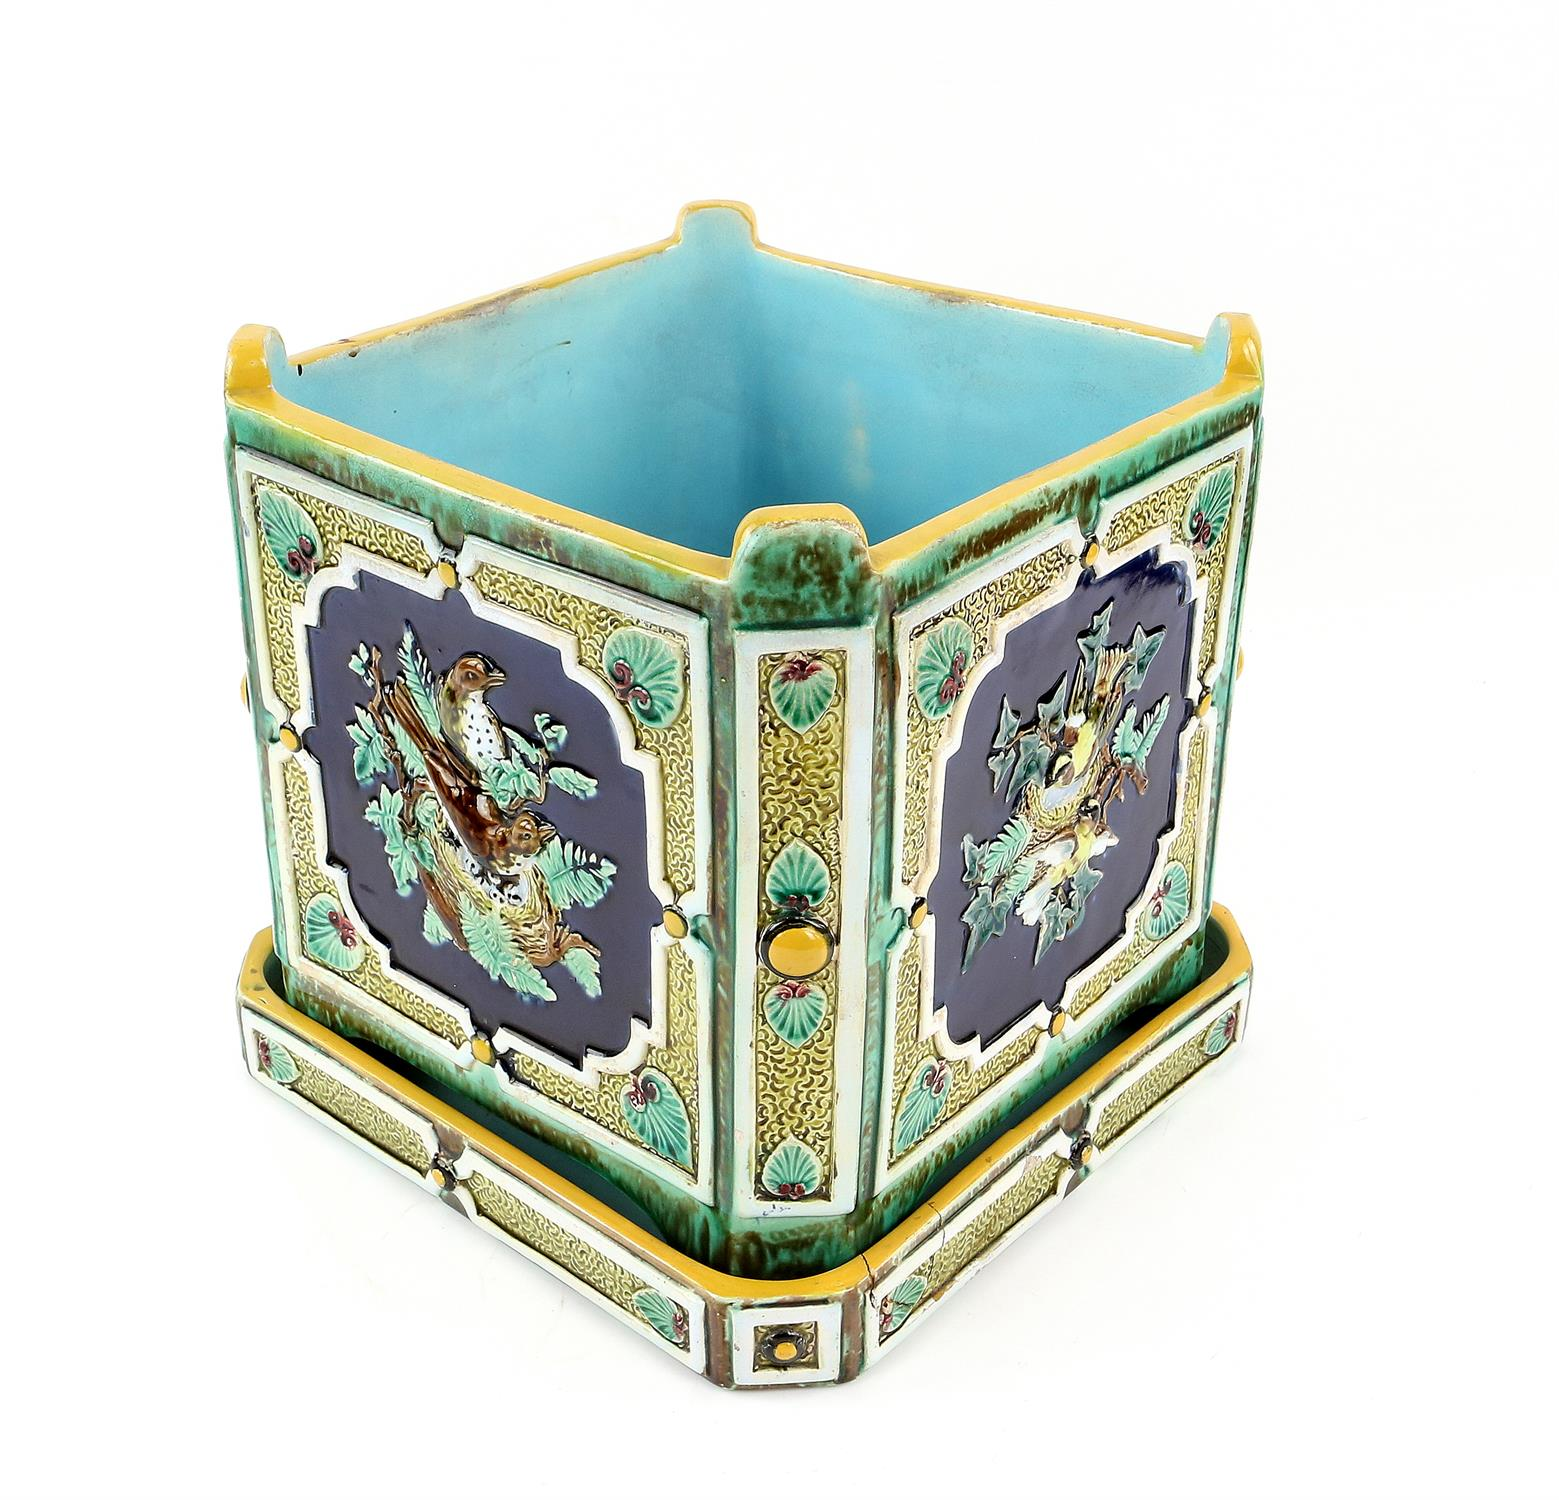 Minton style planter on stand, decorated with pairs of birds on nests. 22cm High, 21.5cm wide, 21. - Image 5 of 10